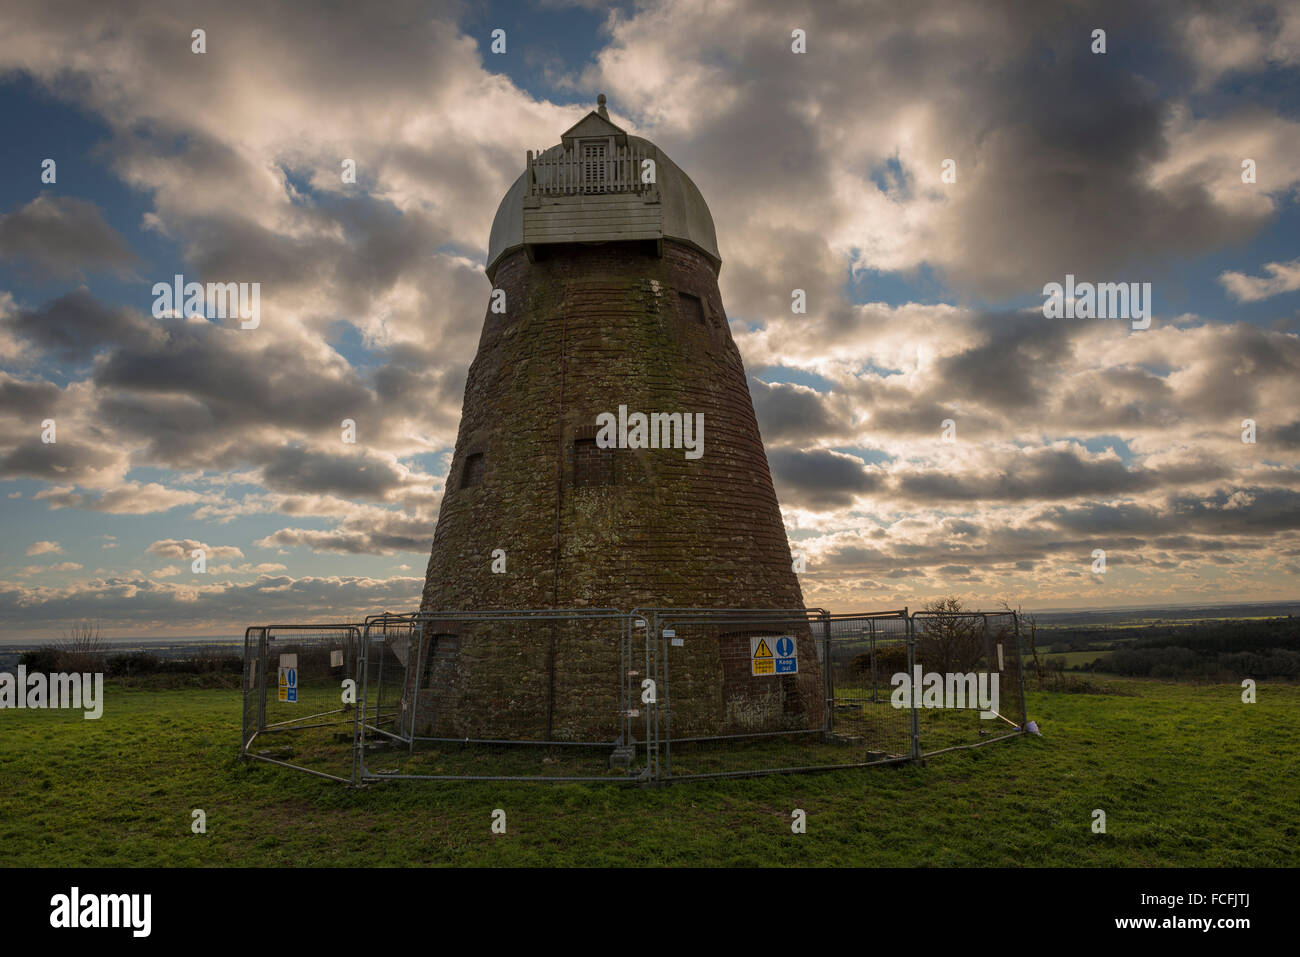 18th Century wind mill on Halnaker Hill near Chichester, West Sussex, UK - Stock Image